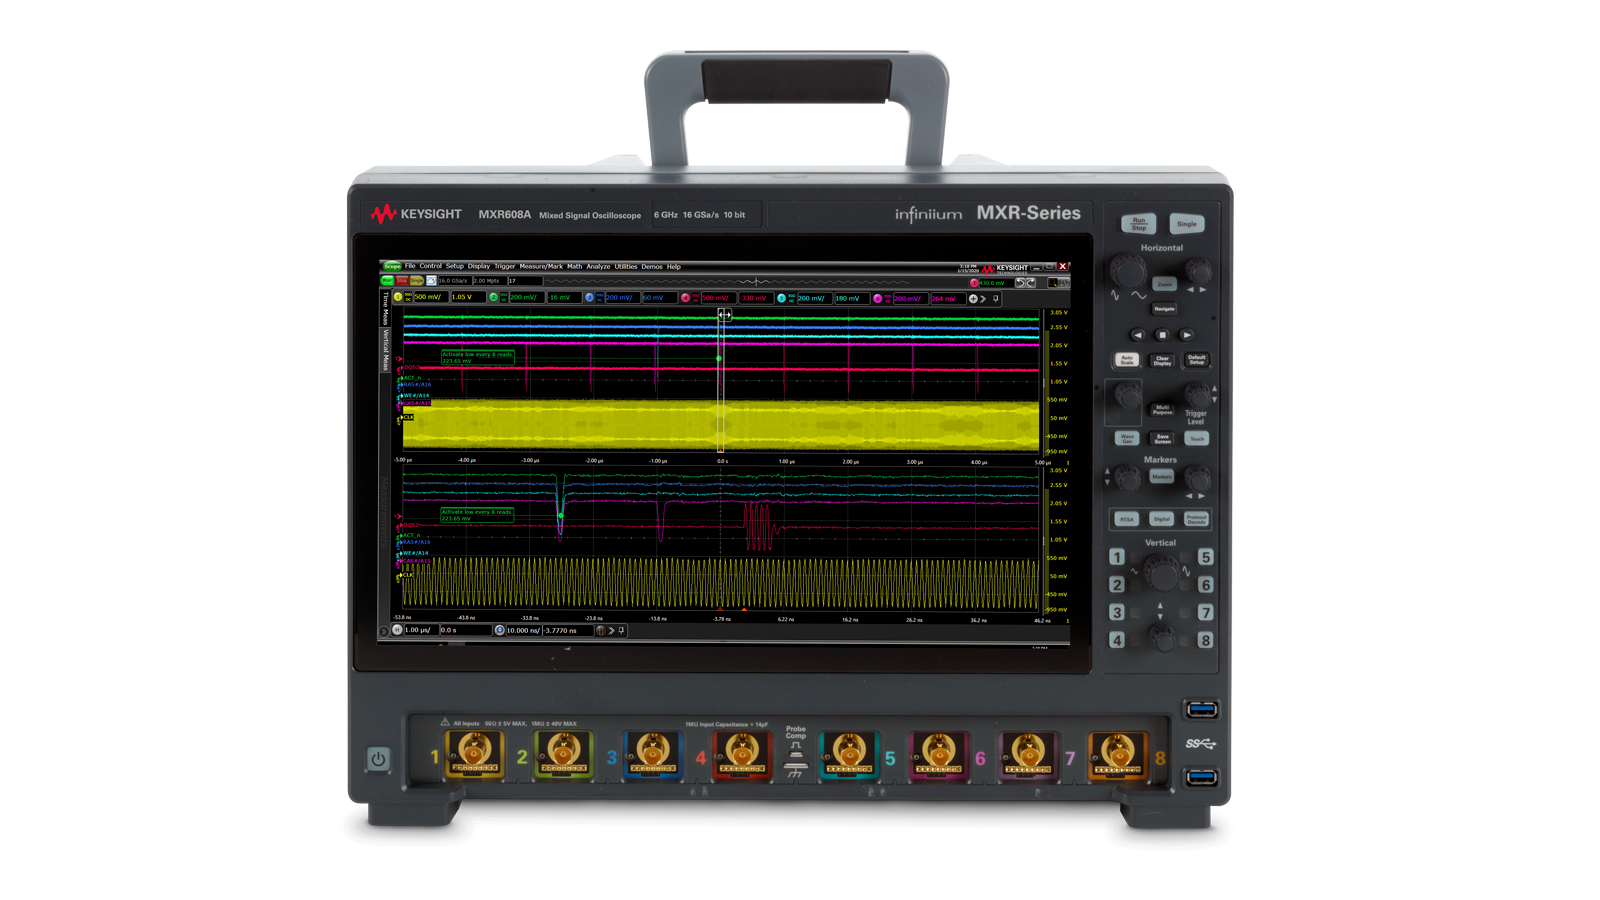 Keysight Infiniium MXR-Series Oscilloscopes